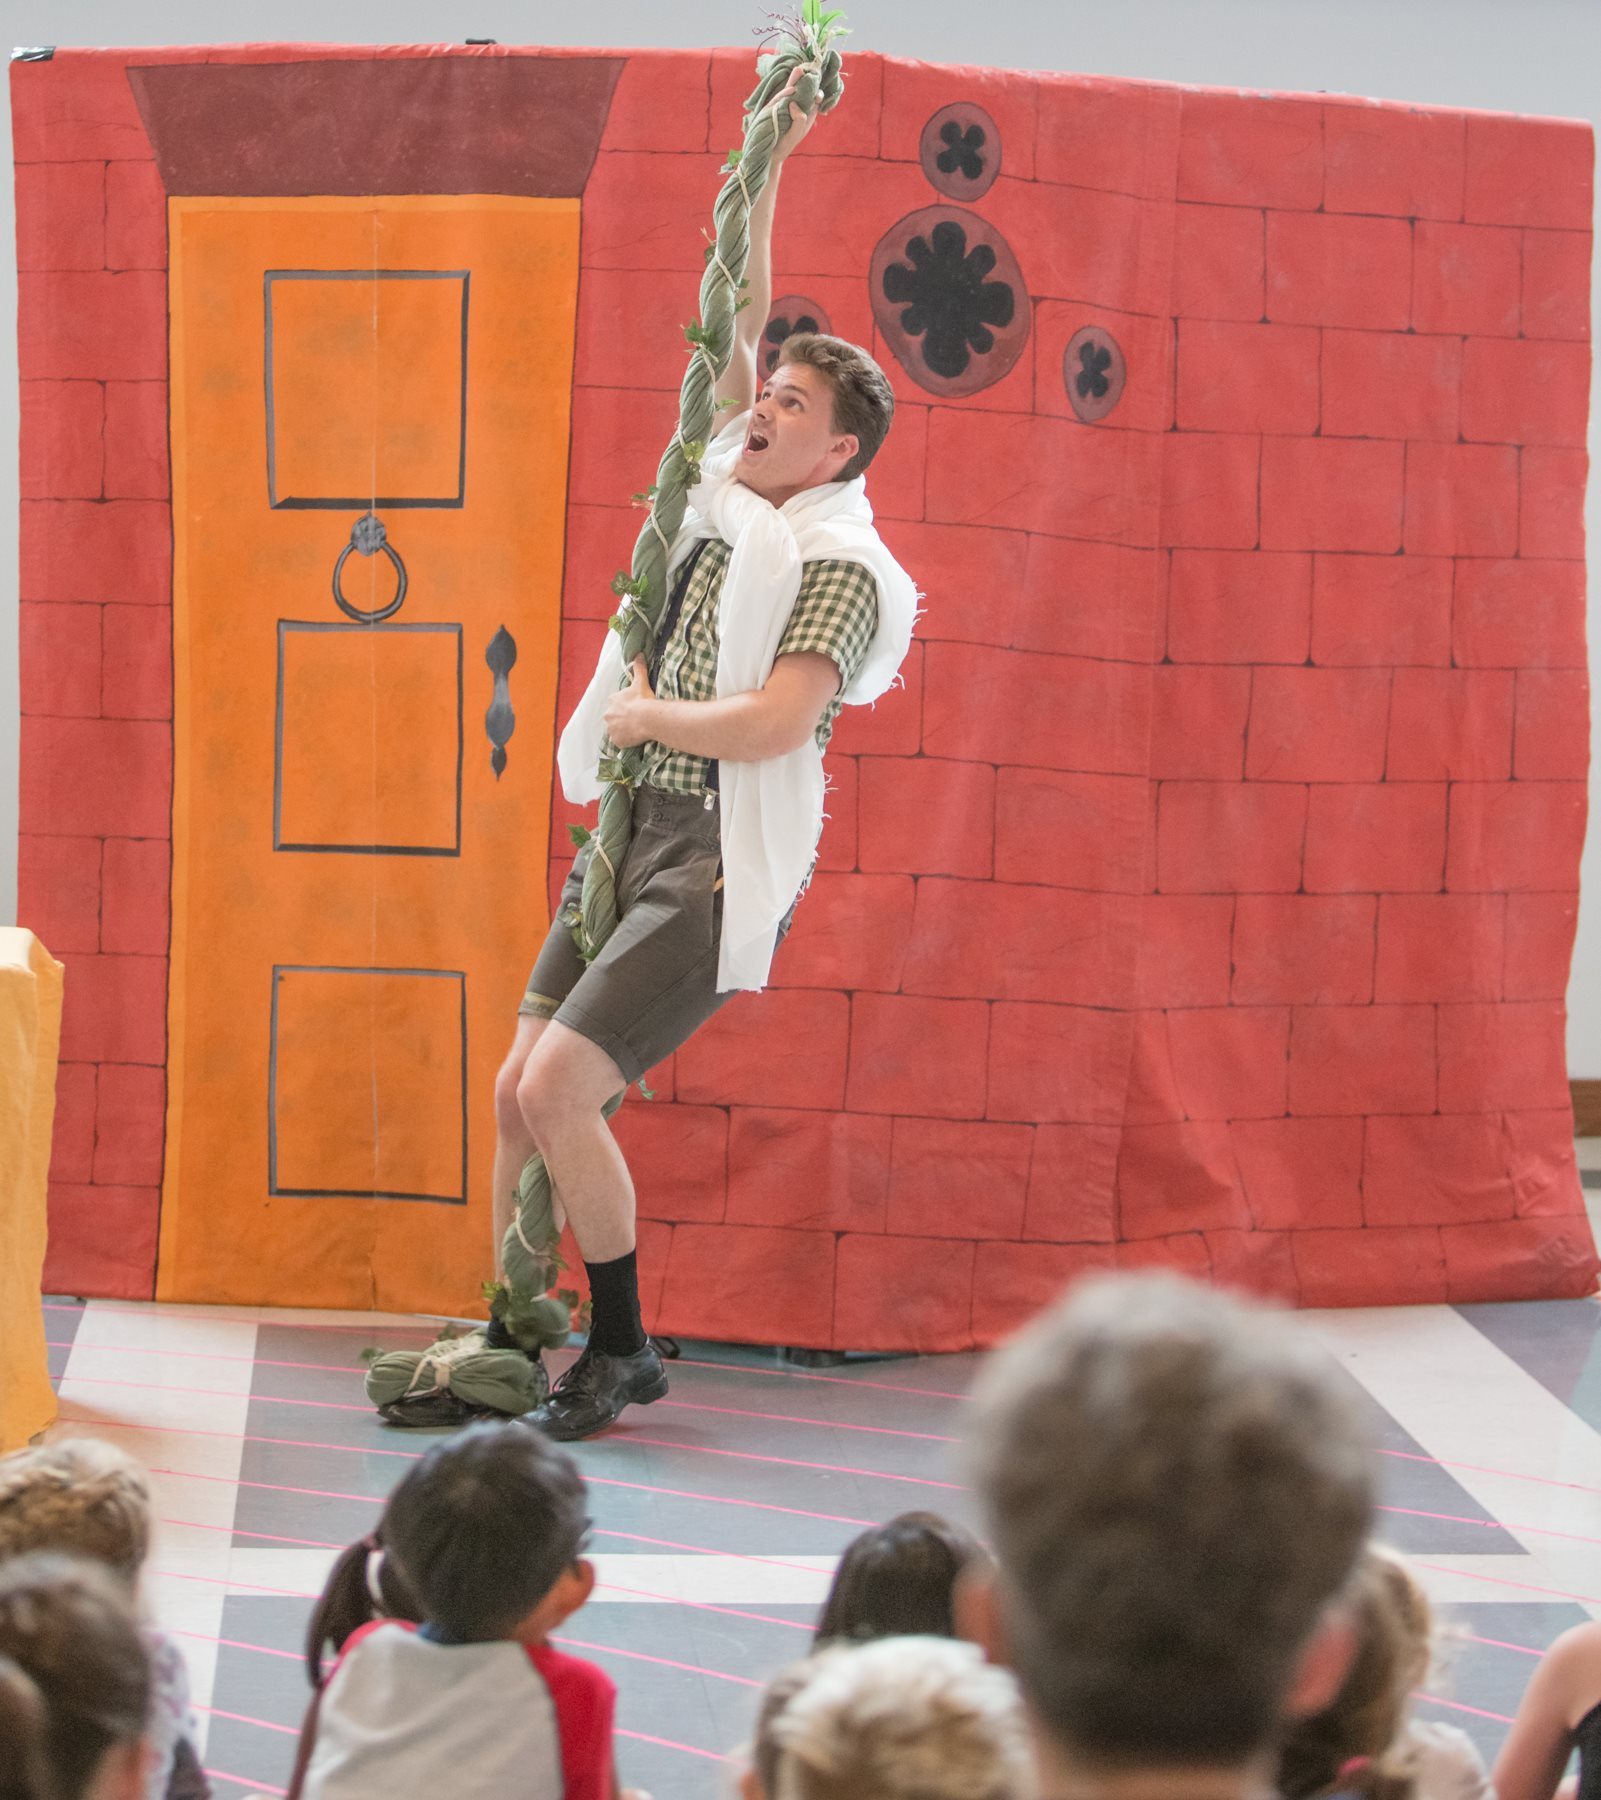 Nolan is ascending into the heavens on a giant beanstalk in front of an audience of young library-goers in the children's opera  Jack and the Beanstalk  with Manitoba UNDERGROUND Opera, 2018.